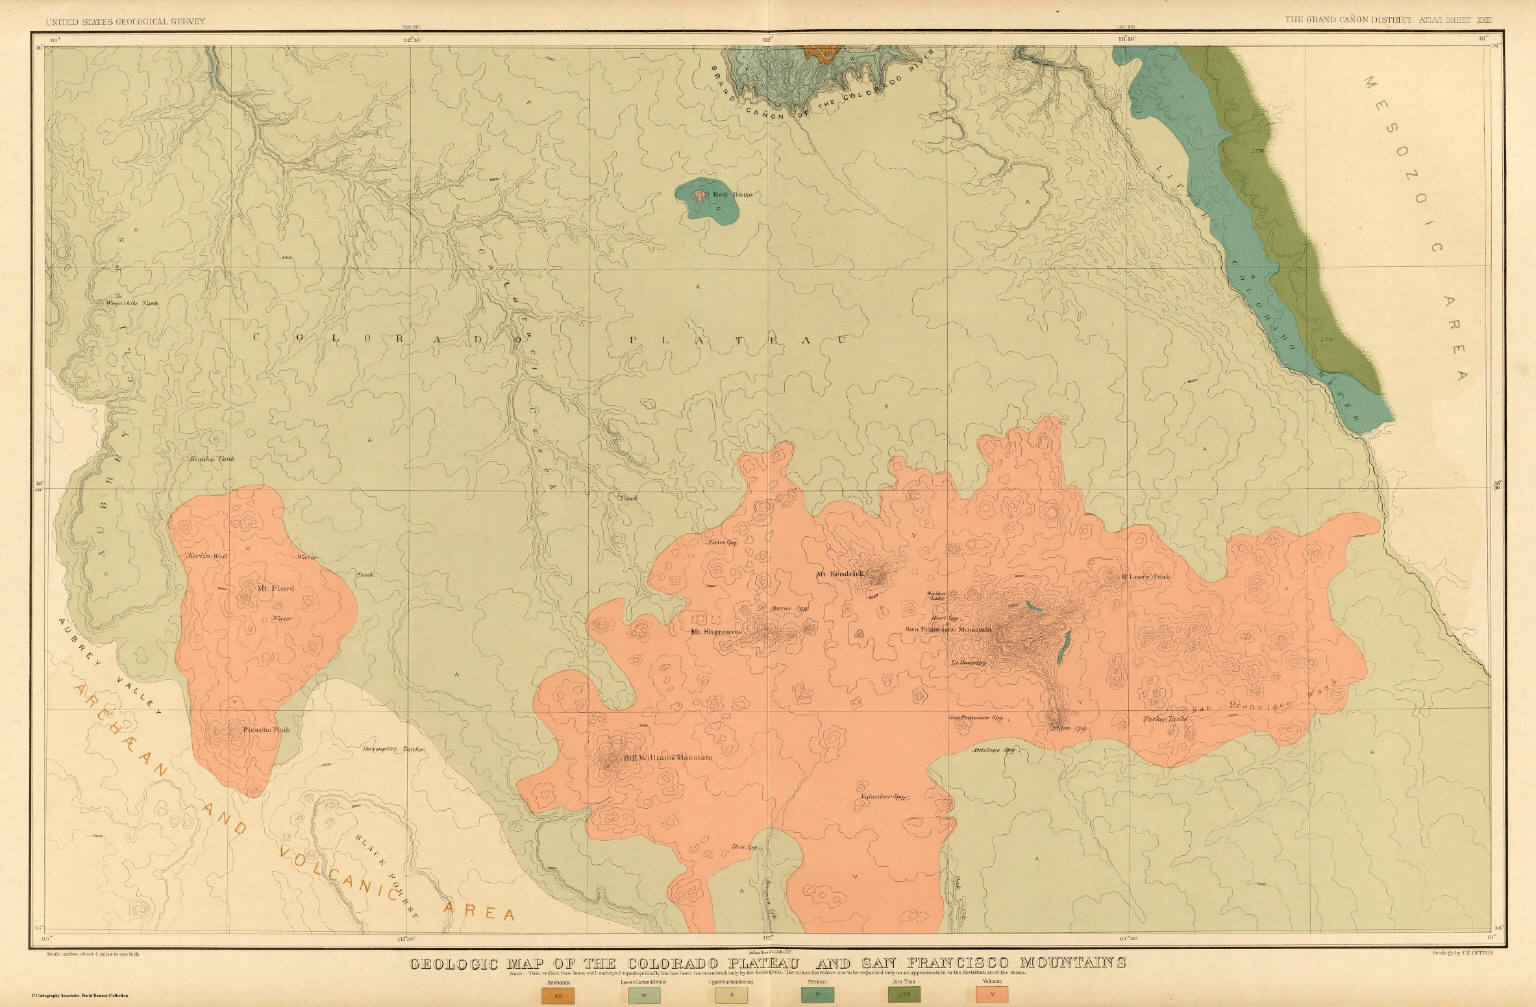 Geologic Map Of The Colorado Plateau And San Francisco Mountains ...